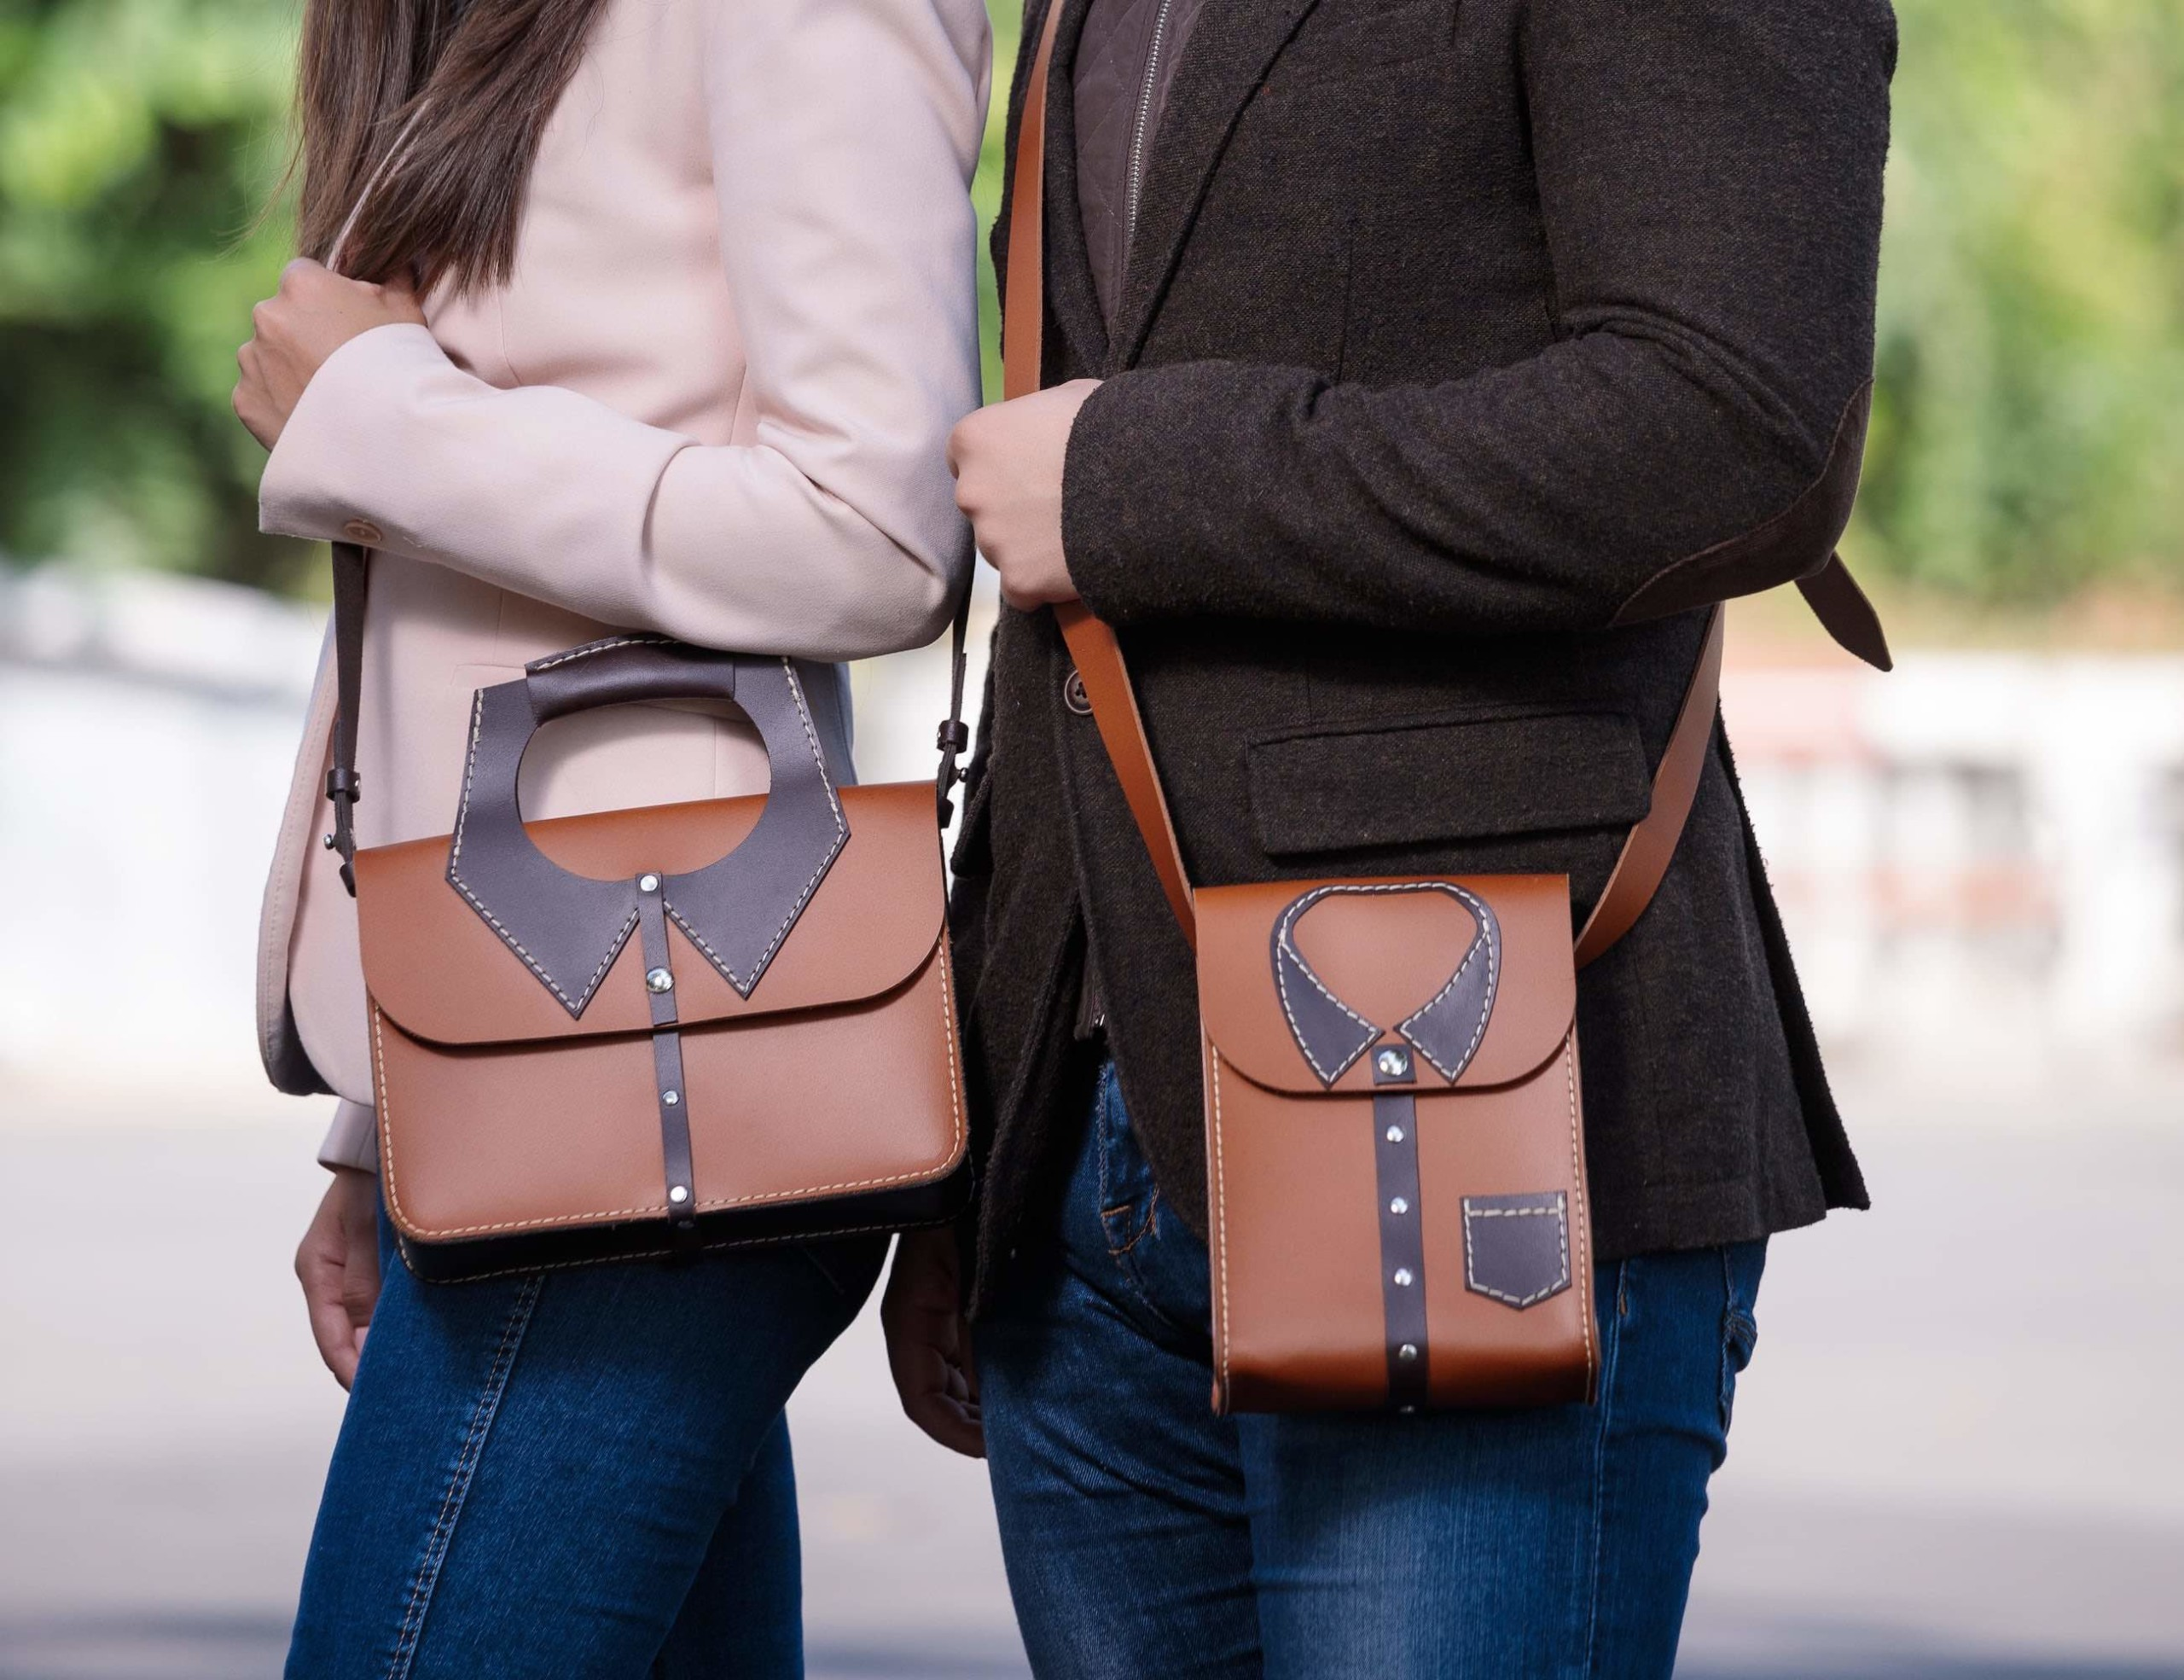 Todd Moni Leather Bags with Character